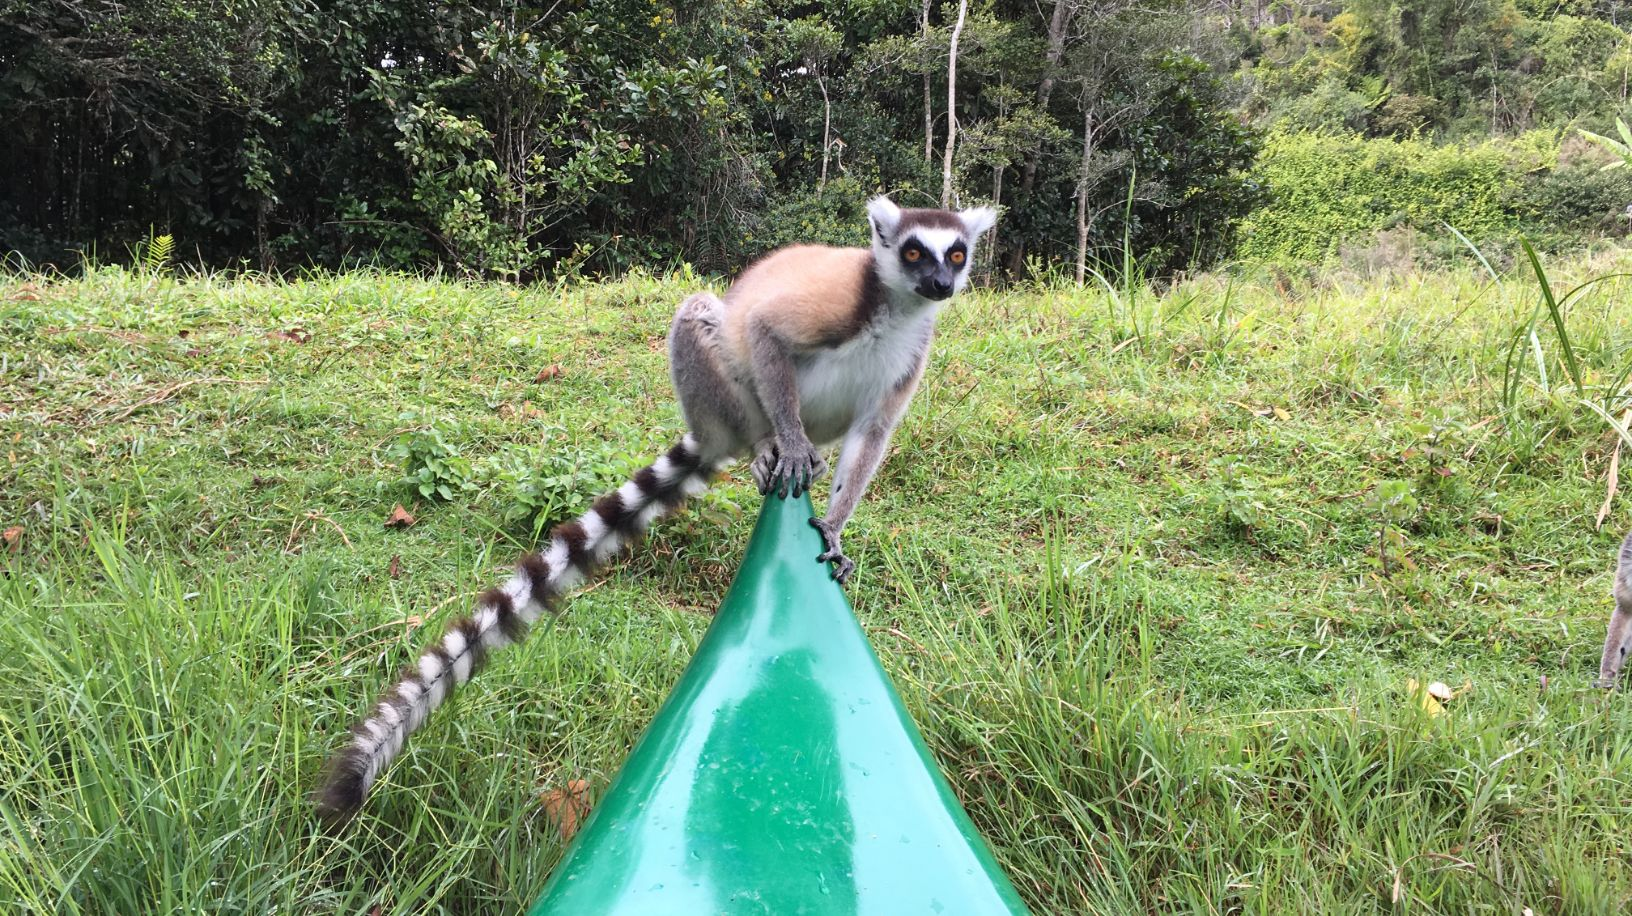 This cute little ringtail lemur jumped on our kayak.